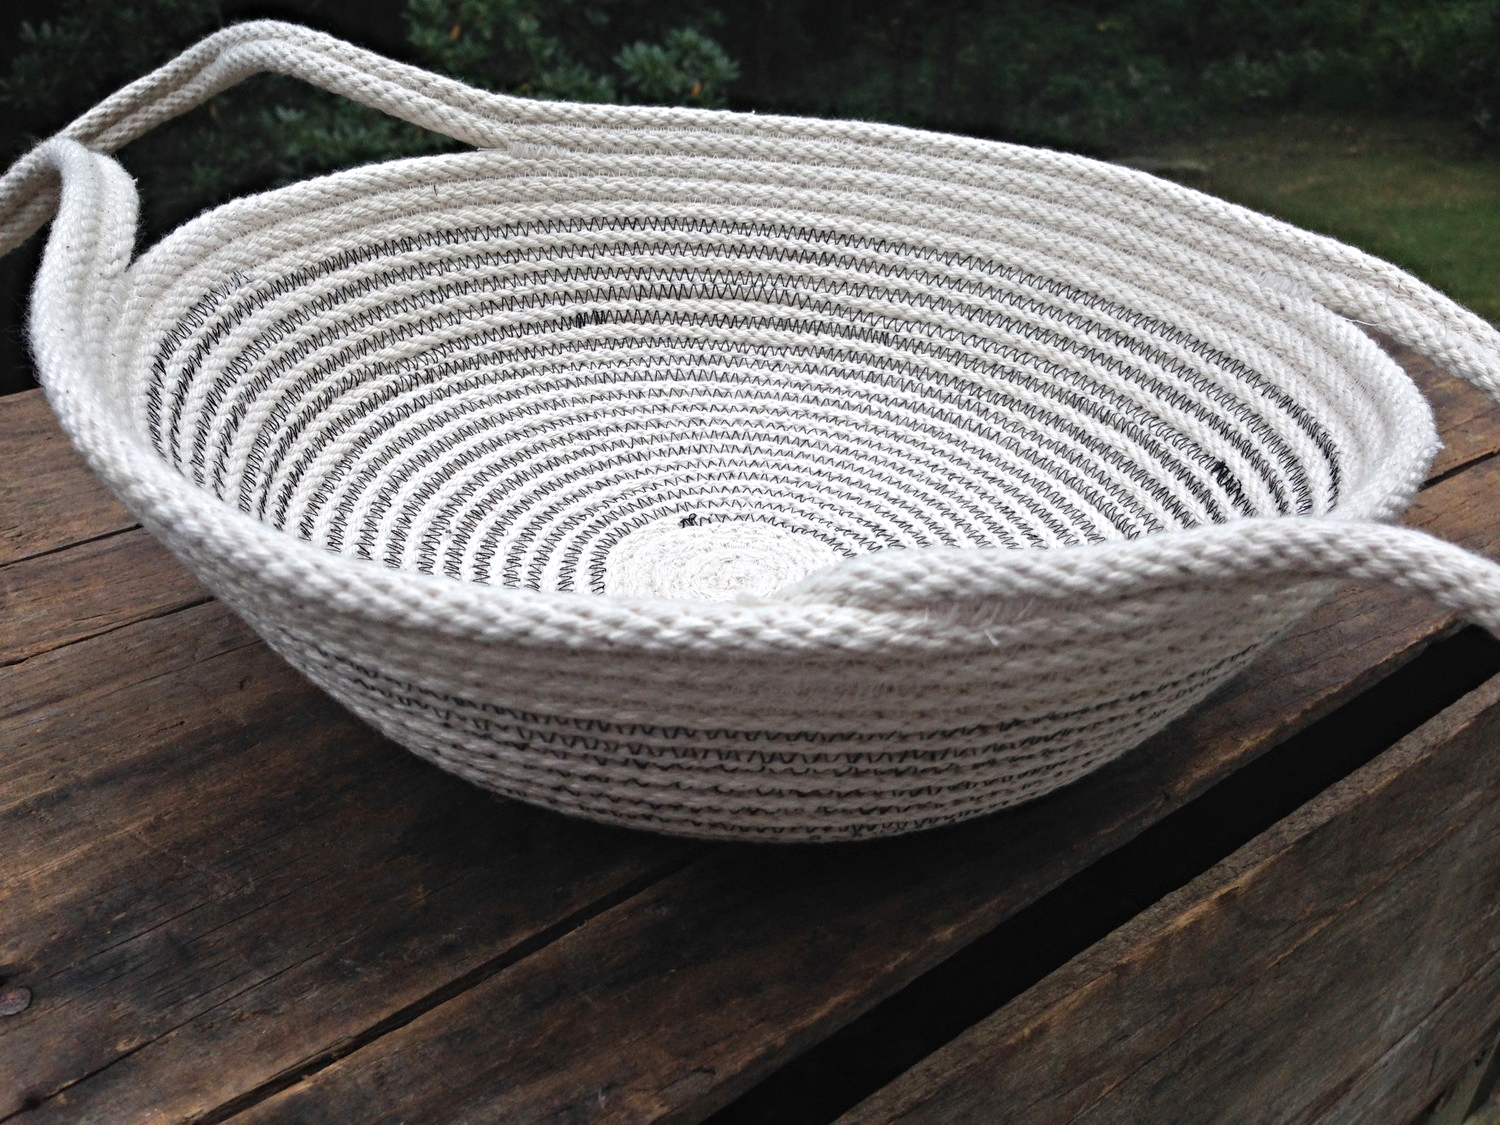 Coiled rope pie or dish plates with handles, which make transport and travel much easier! (N. Totino Clark,  ColeMama Creations )